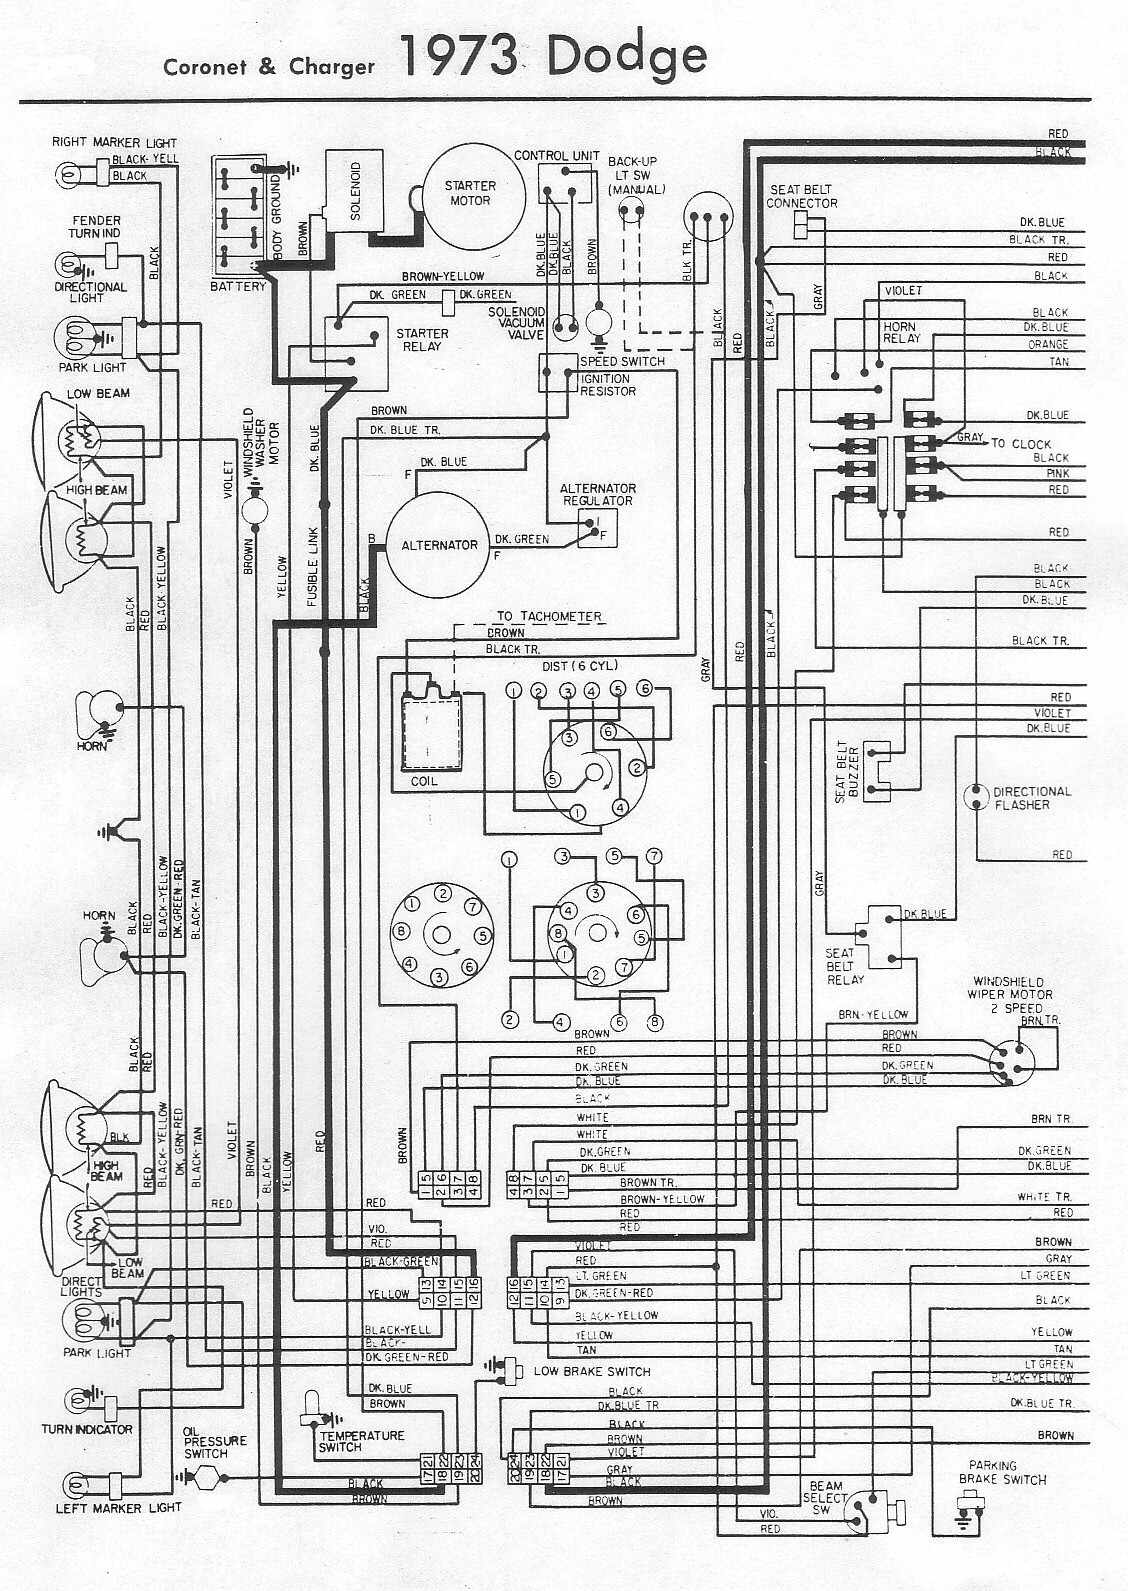 Maruti 800 electrical wiring diagram pdf circuit and www 87 maruti car wiring diagram size of wiring diagramsuzuki alto diagram suzuki cheapraybanclubmaster Image collections